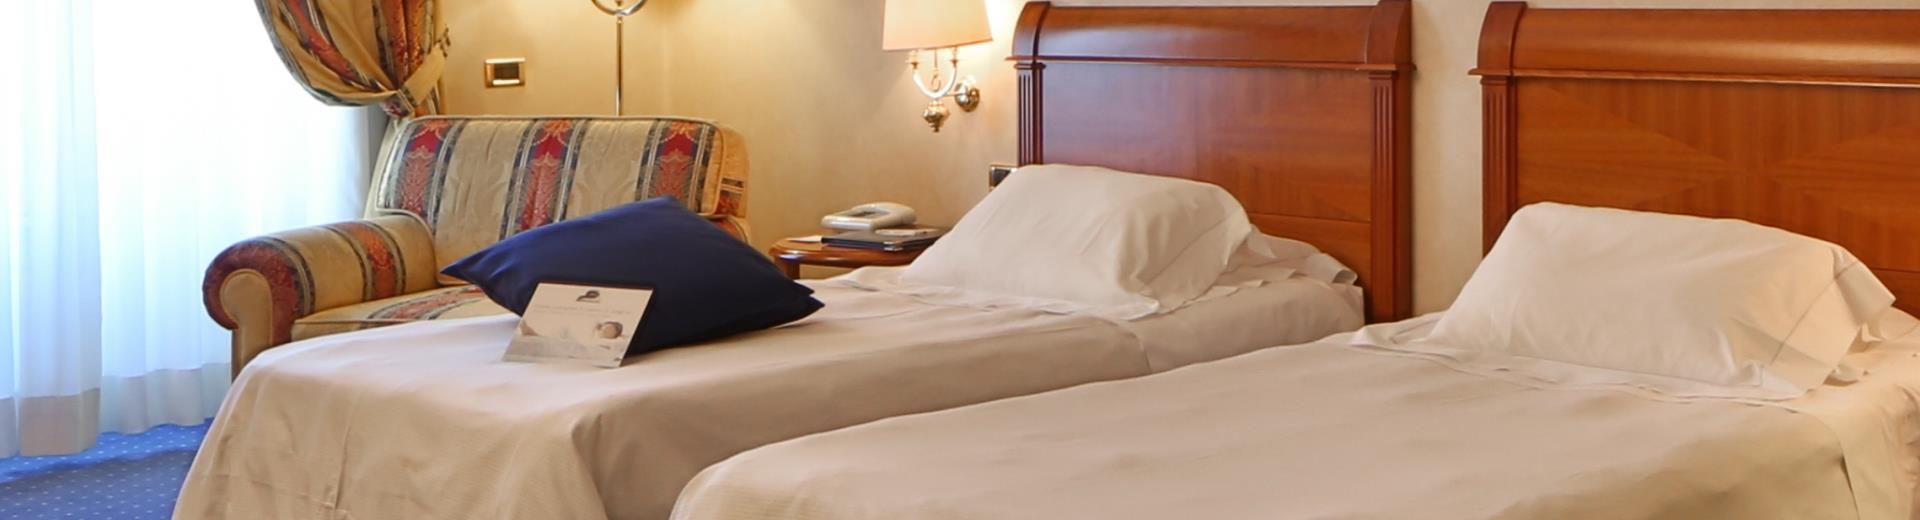 Choose our hotel 4 stars for your family holidays in Bergamo city